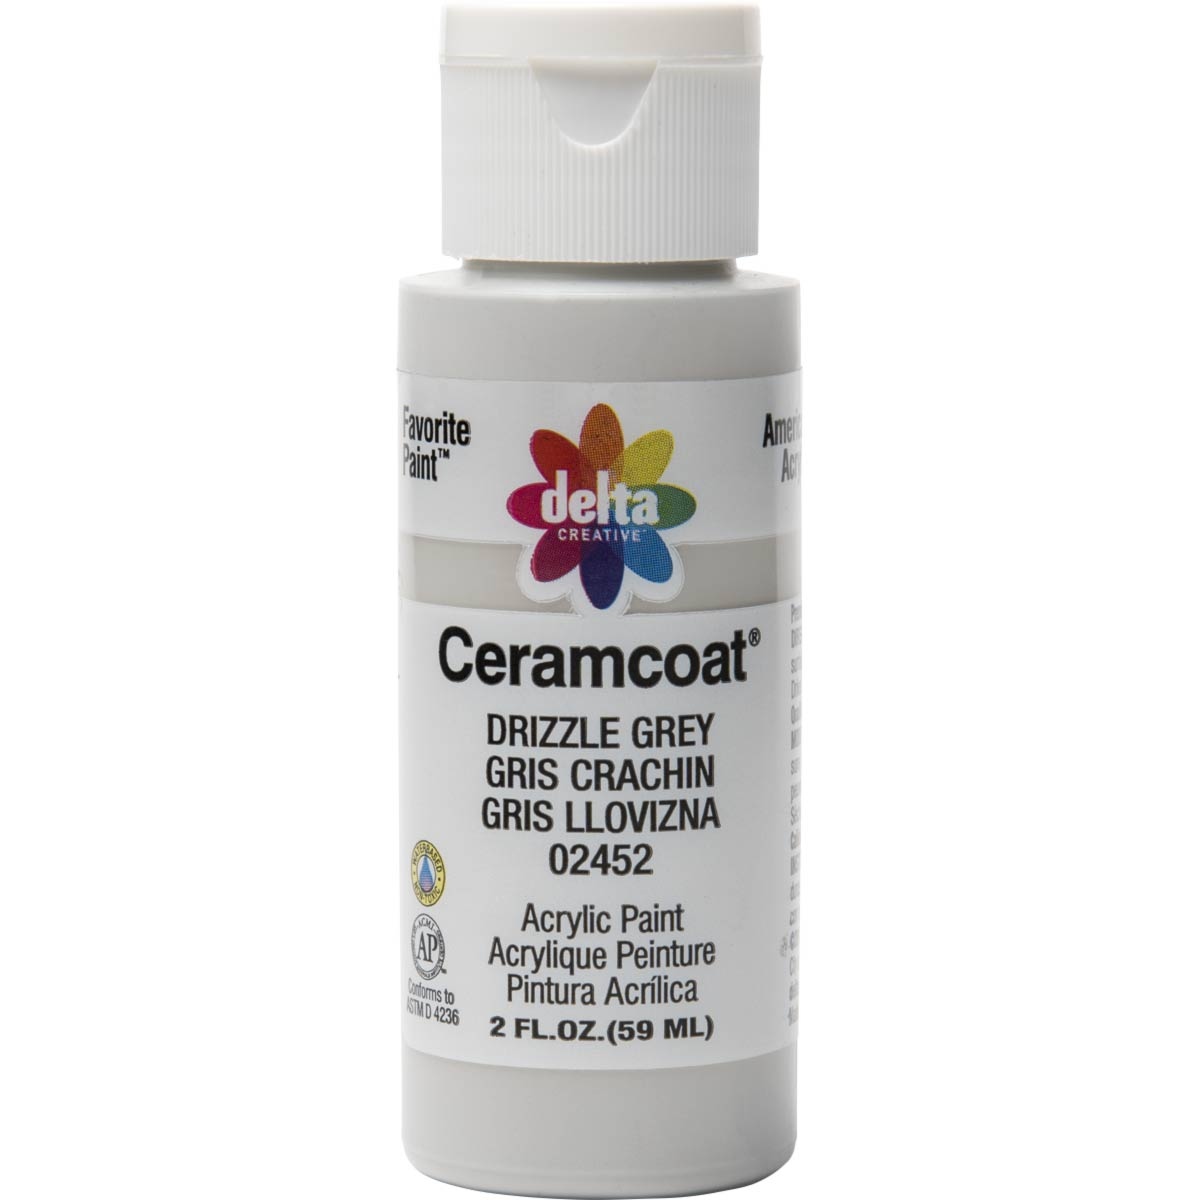 Delta Ceramcoat ® Acrylic Paint - Drizzle Grey, 2 oz.